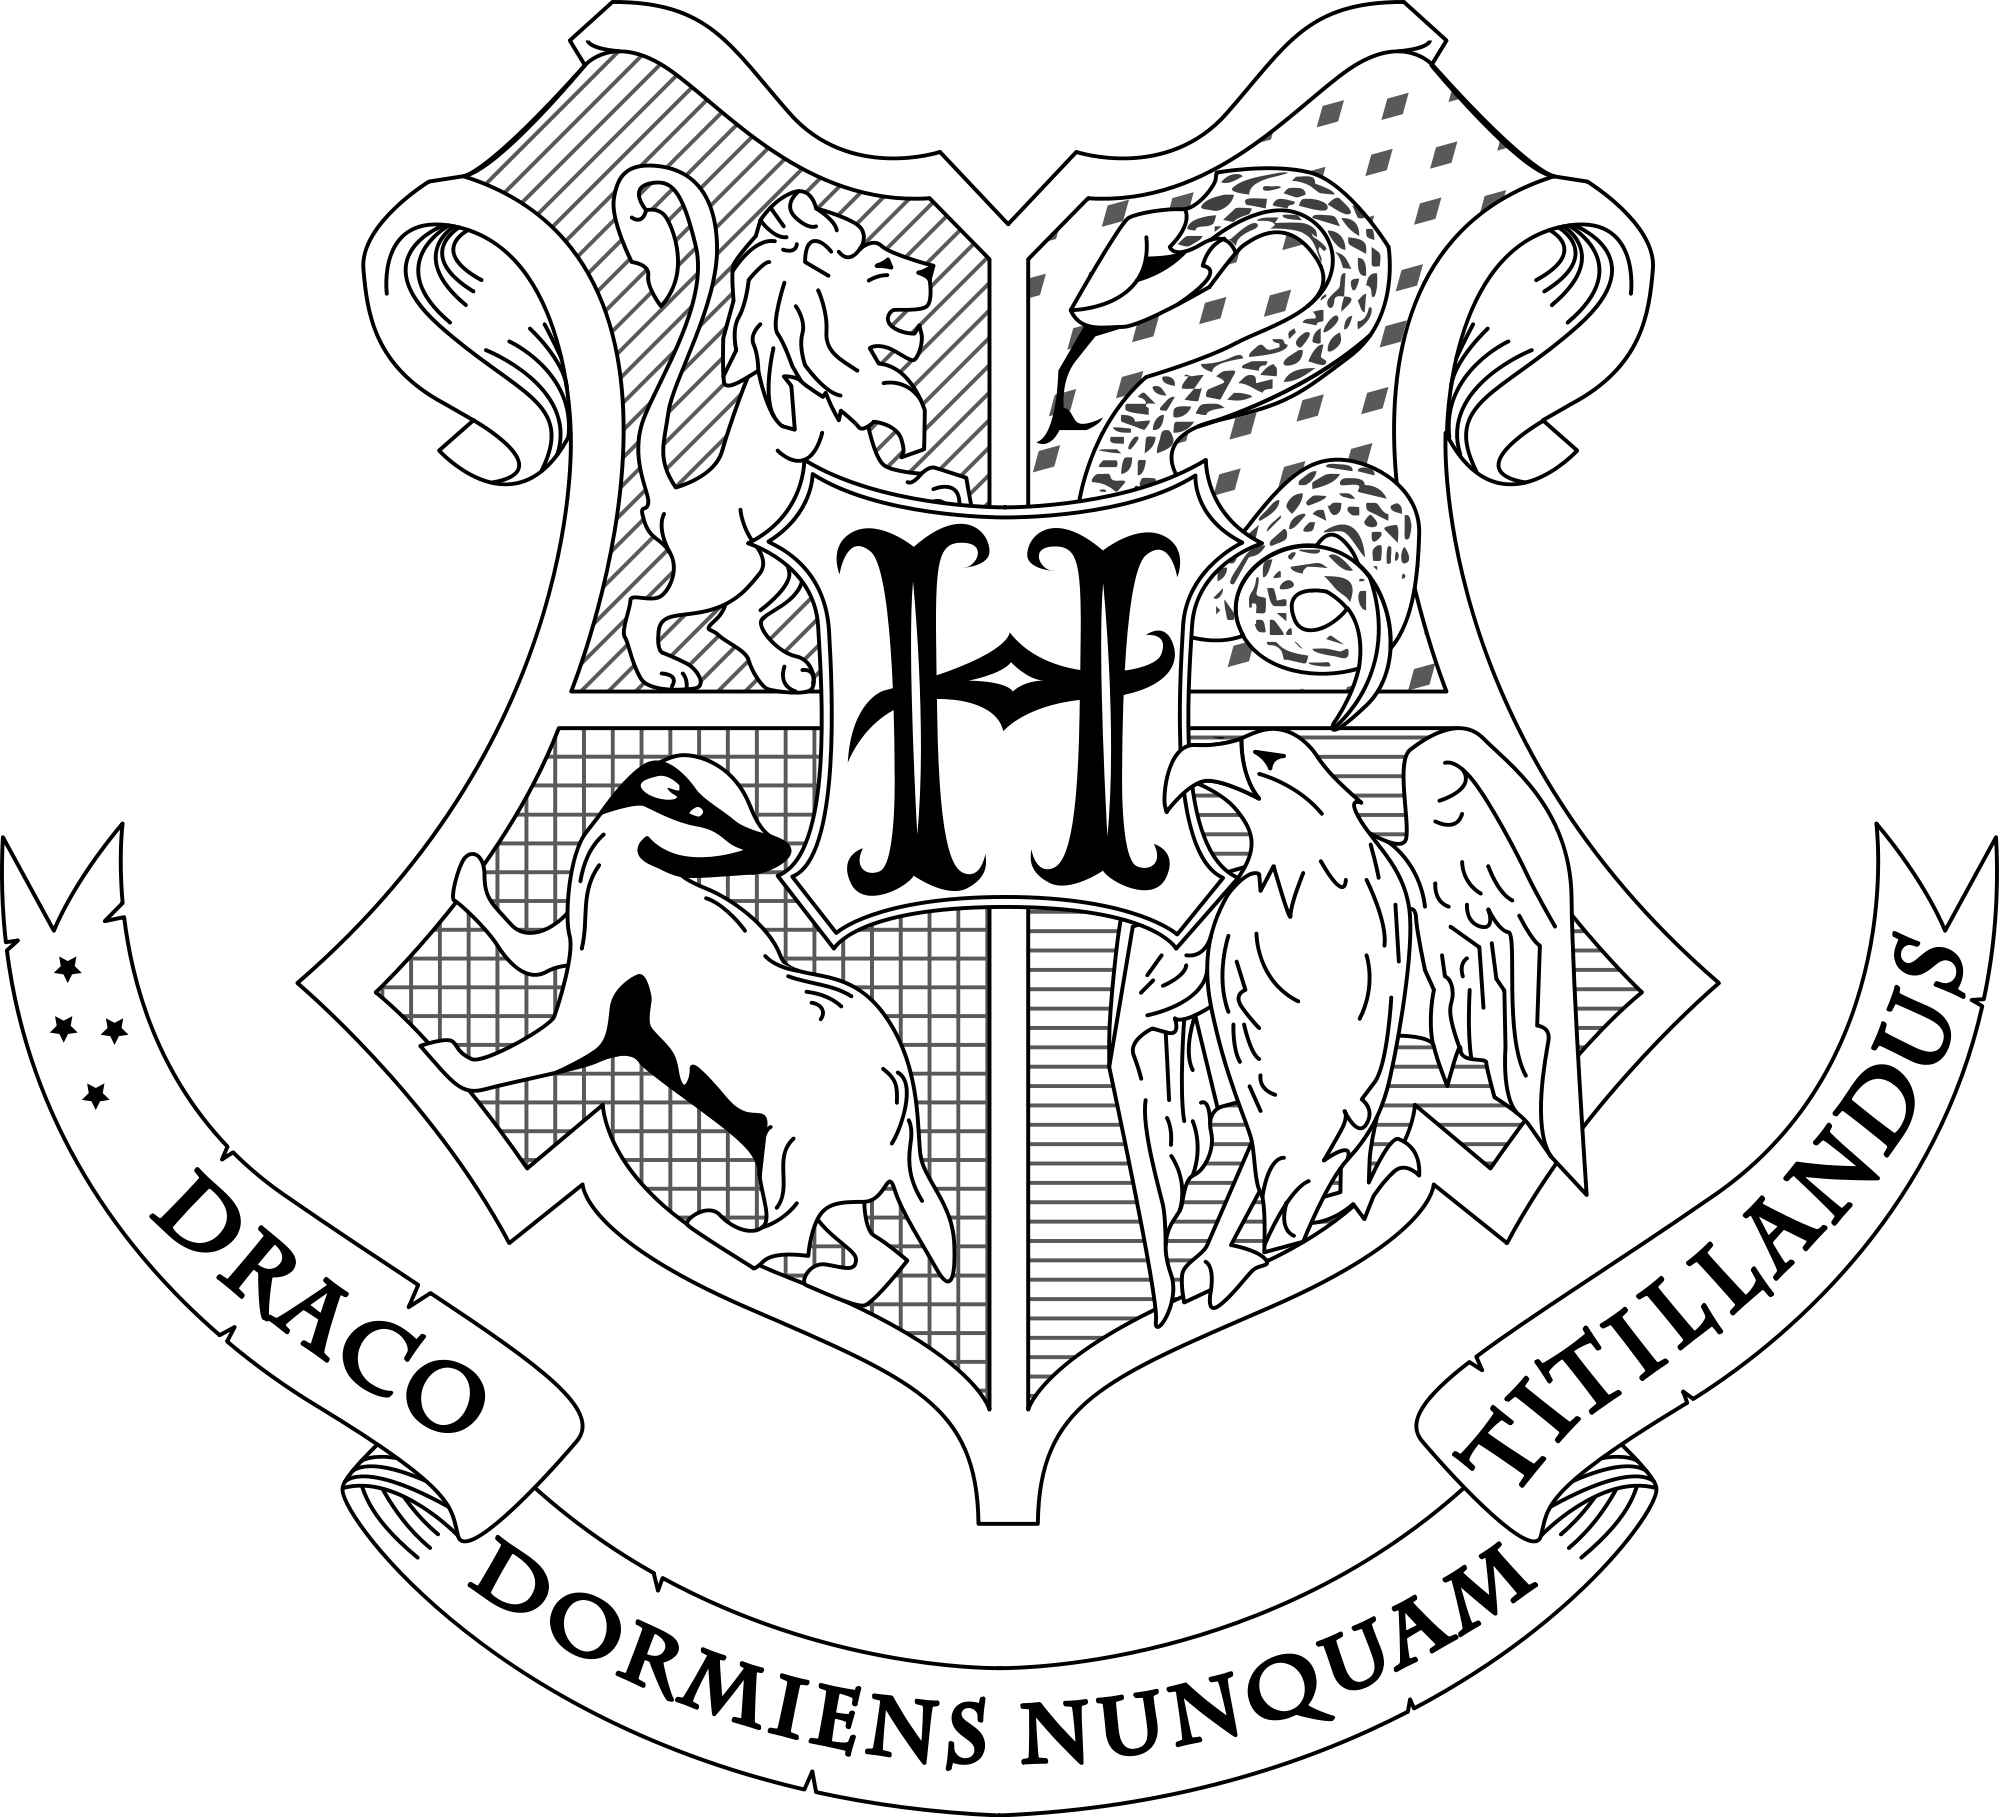 This is a photo of Exceptional Hogwarts Crest Printable